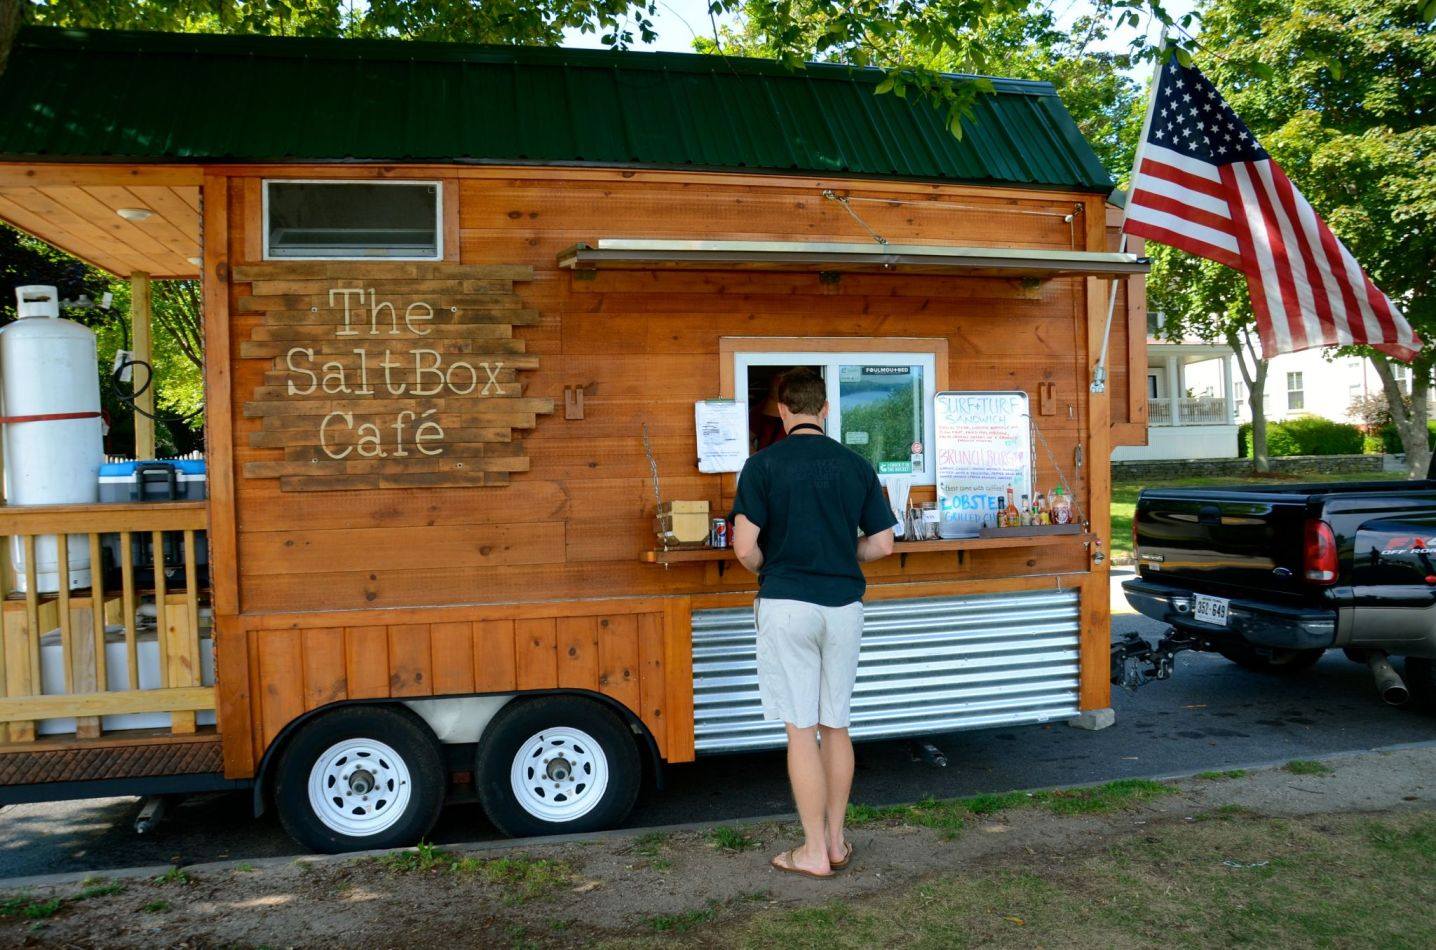 Eating at the food truck at the Eastern Promenade in Portland, Maine